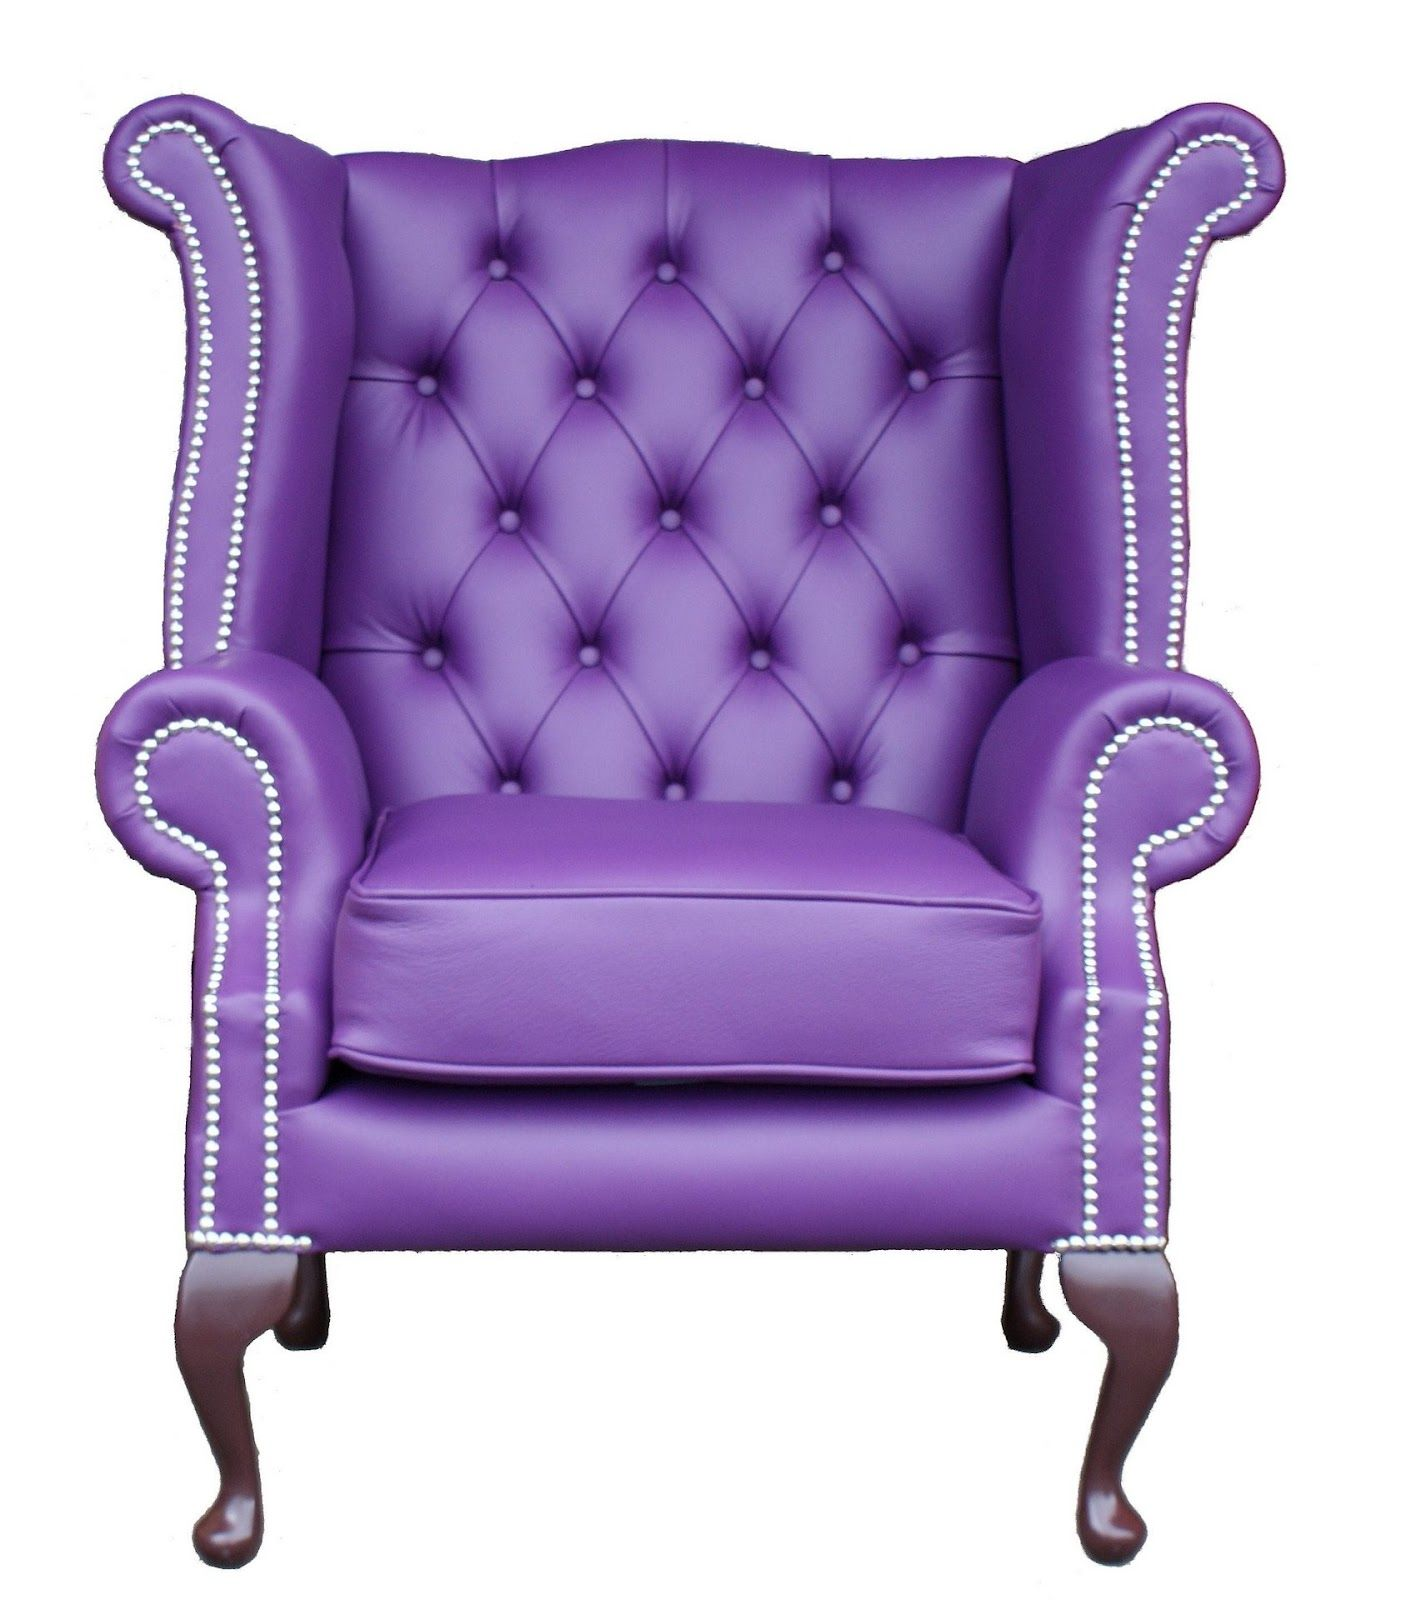 Chesterfield Queen Anne High Back Wing Purple Chair